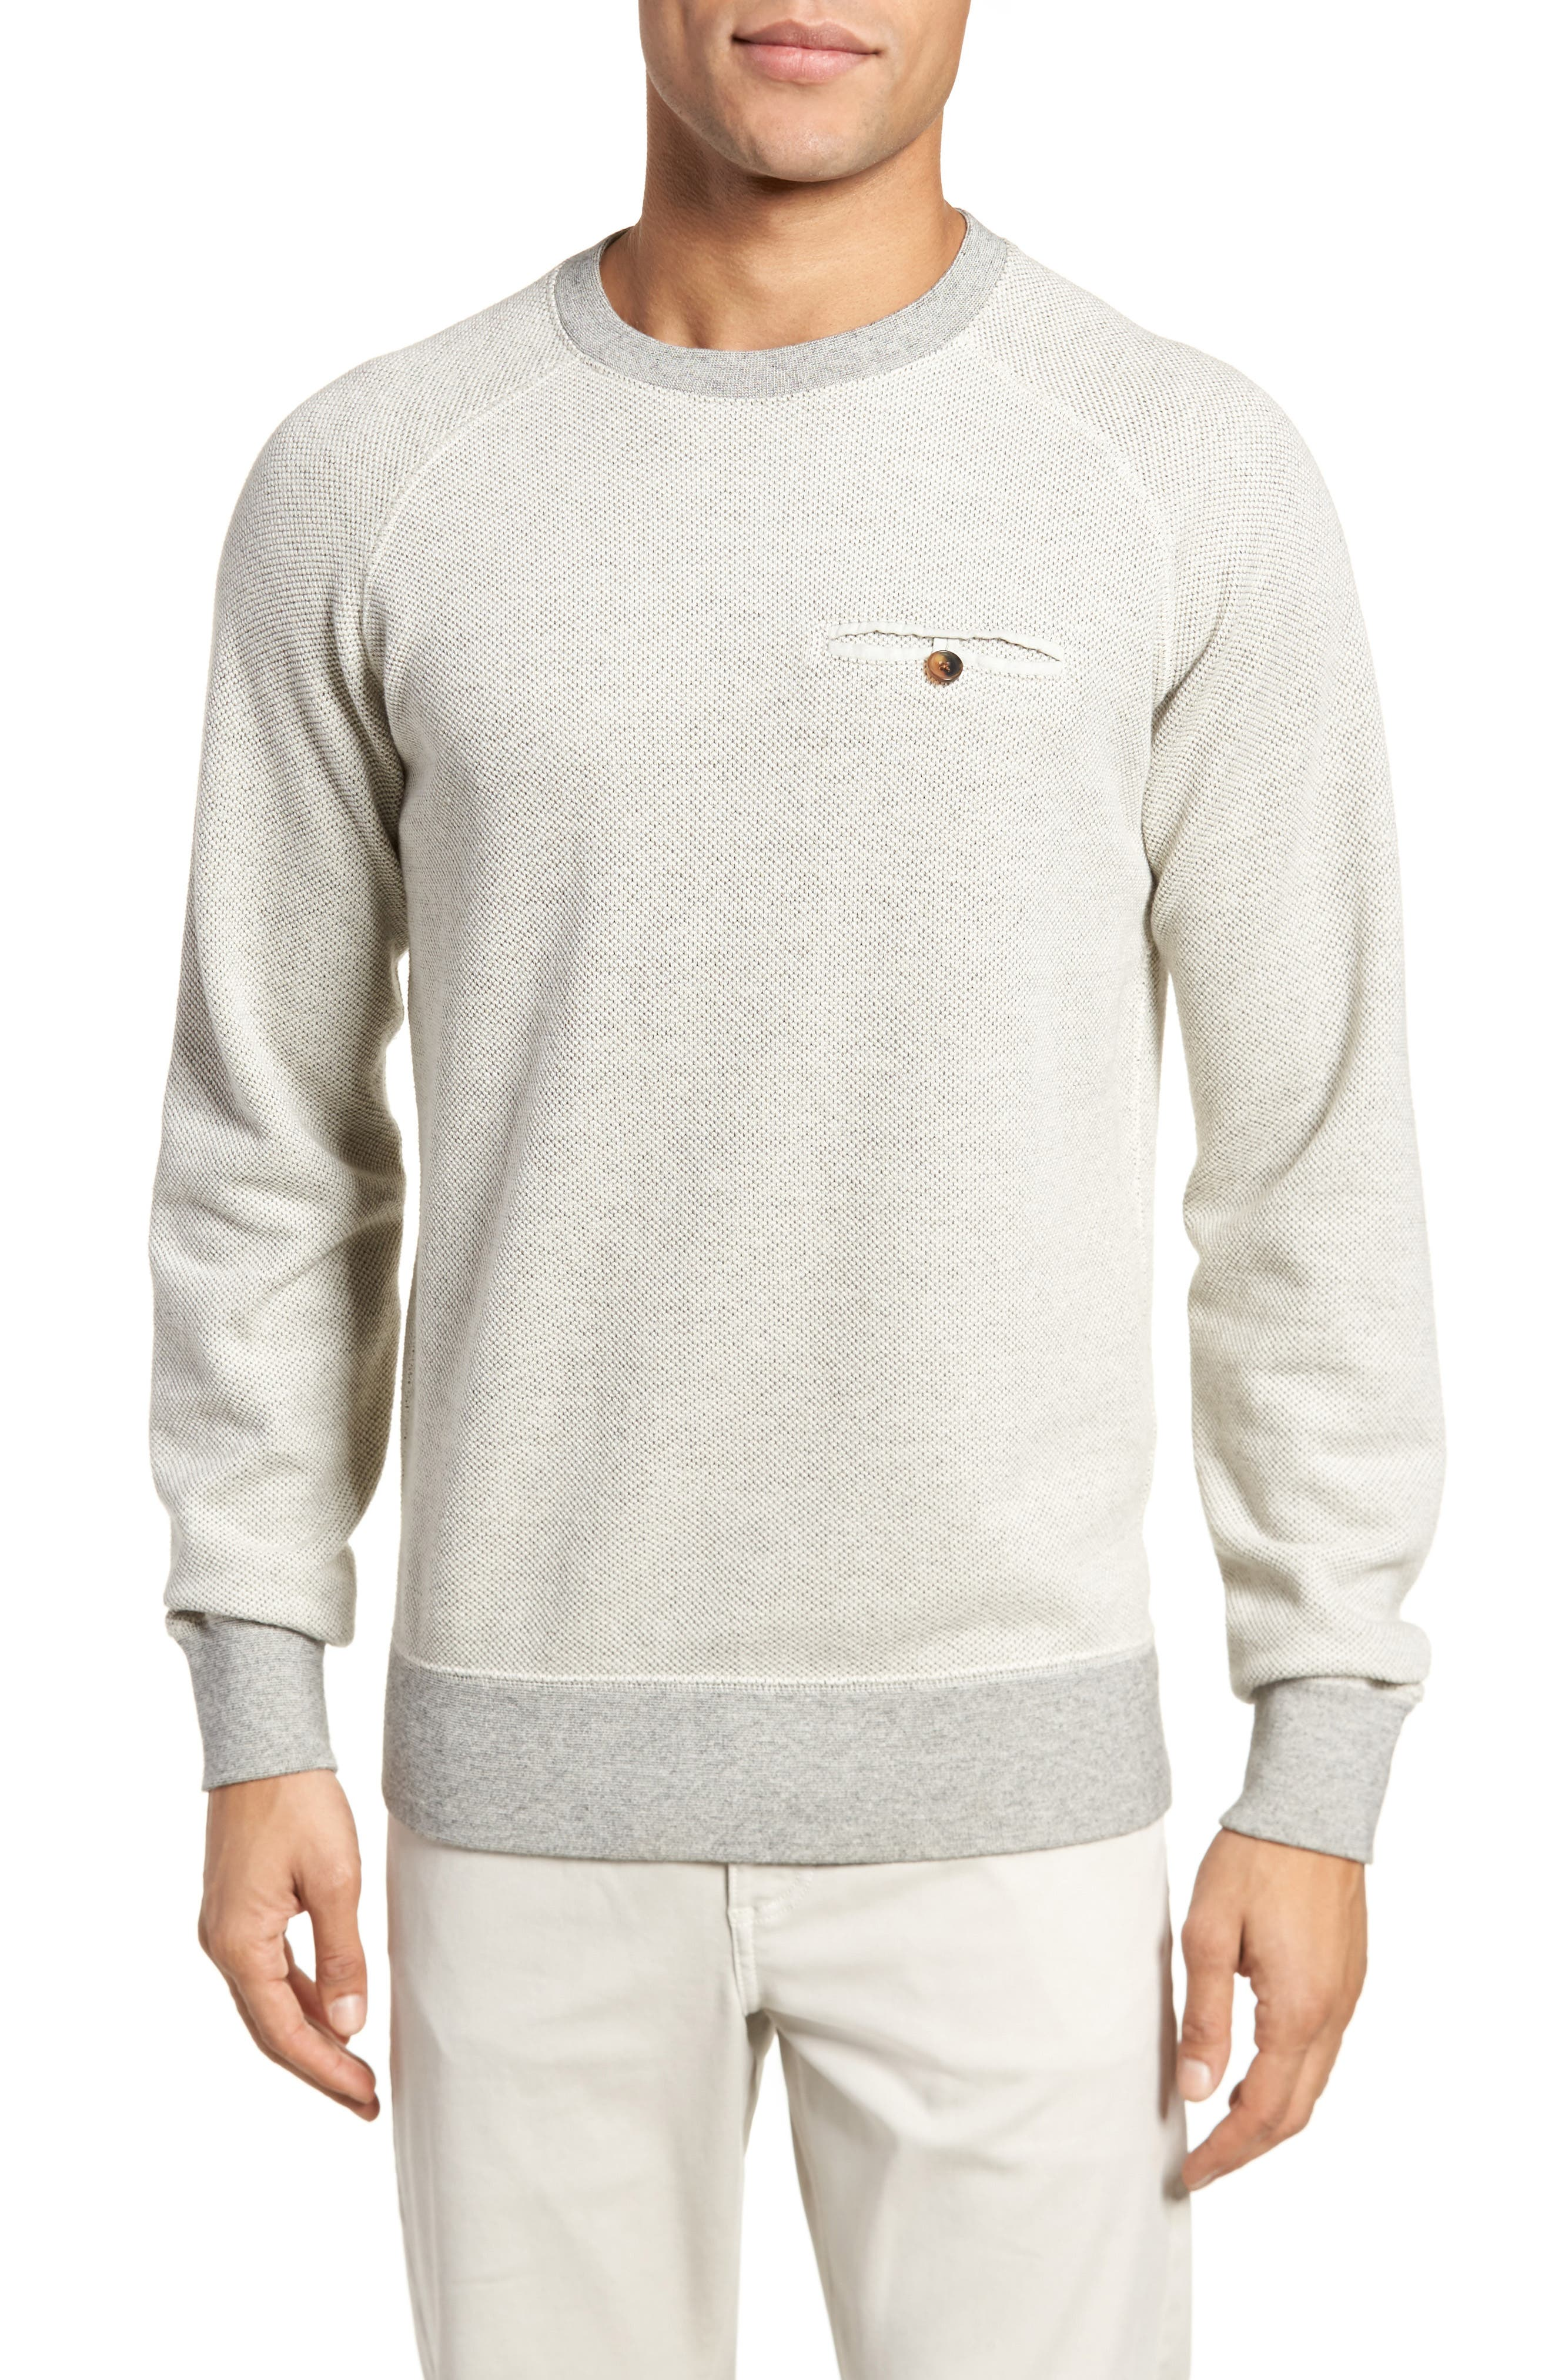 Tommy Pullover Sweatshirt,                         Main,                         color, 032